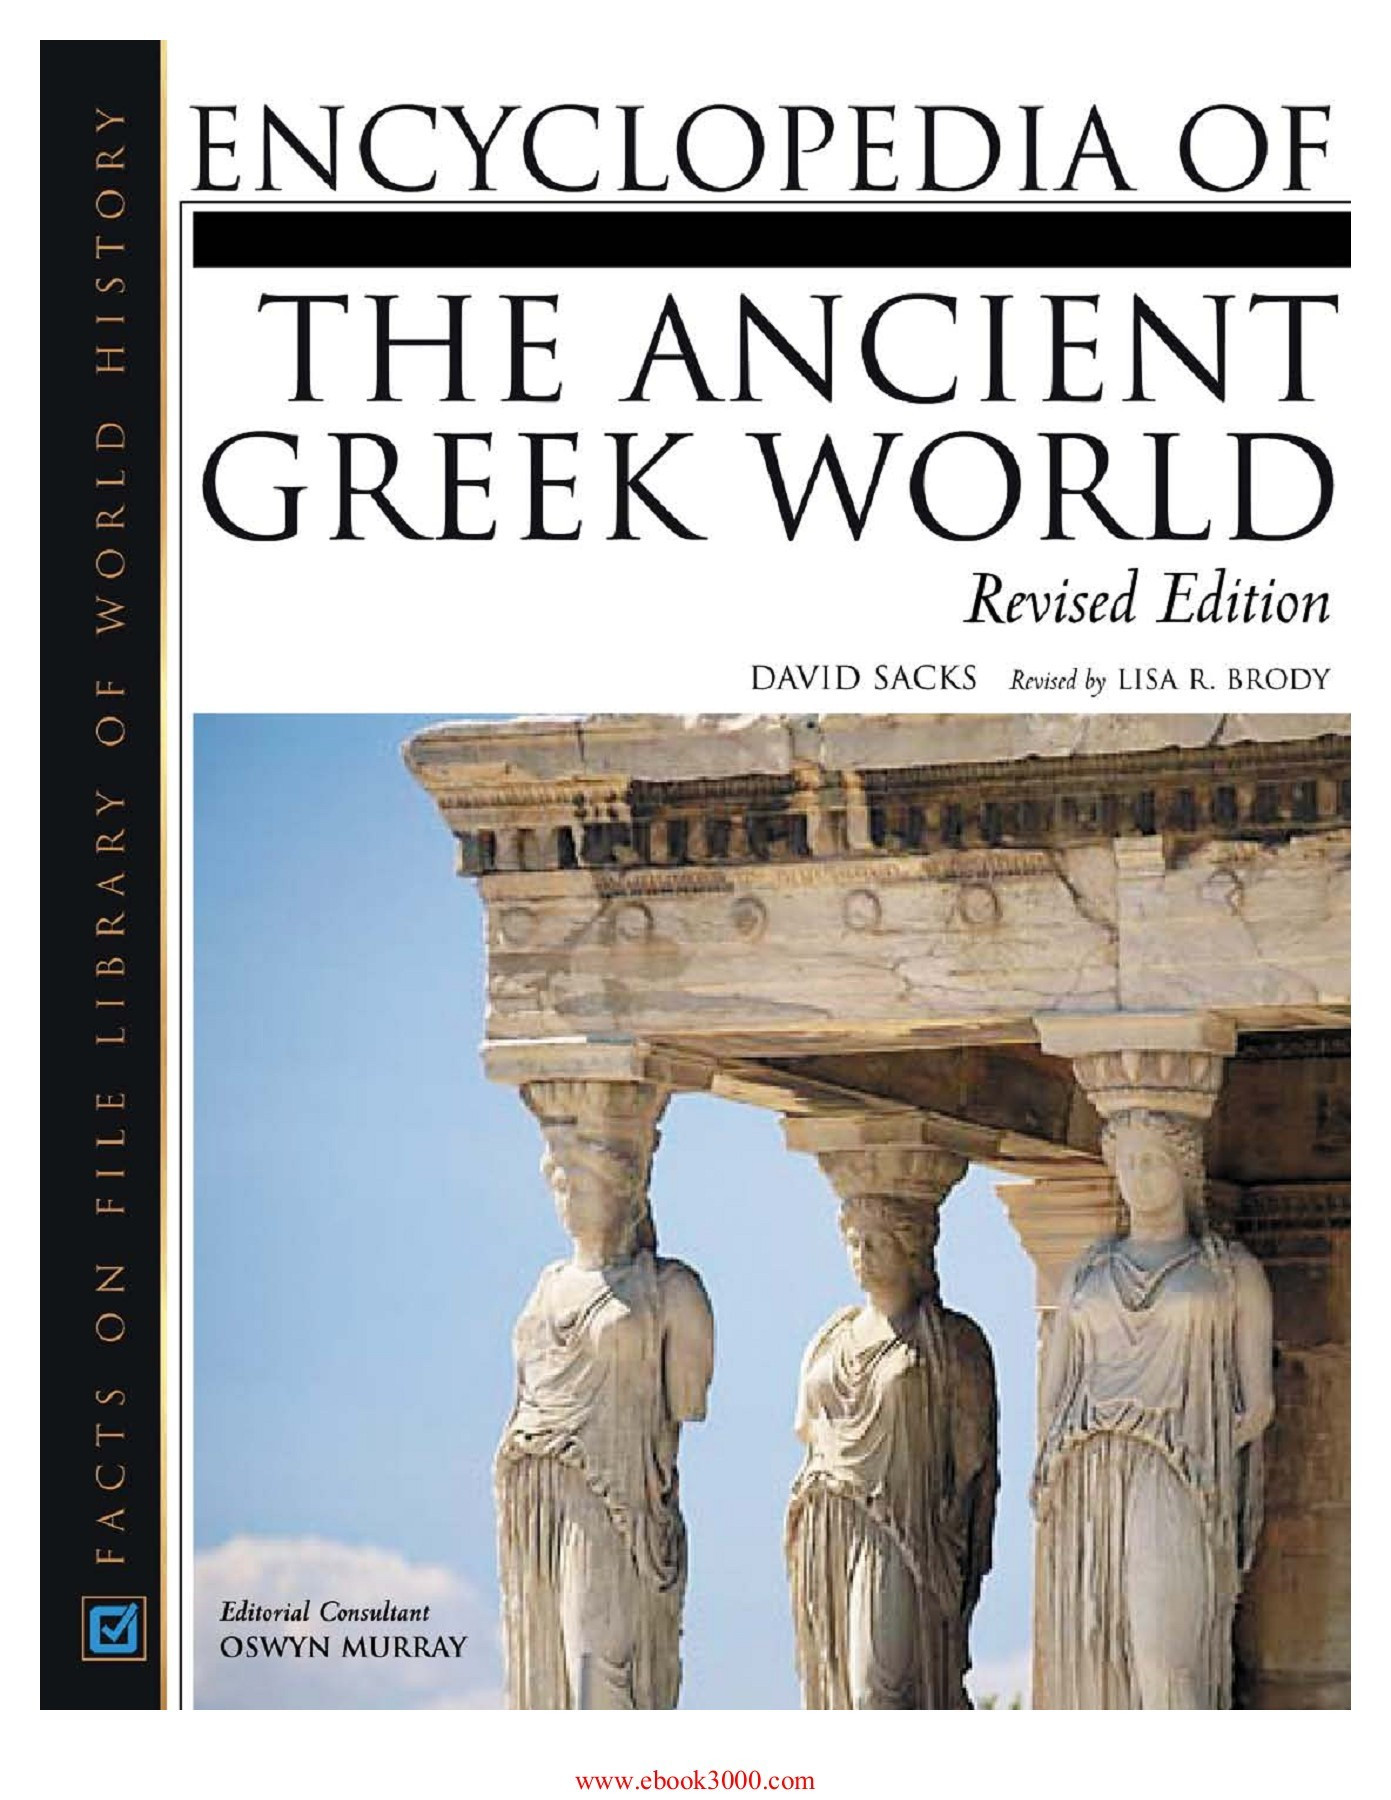 e o brody vase of encyclopedia of the ancient greek world pages 1 50 text version pertaining to encyclopedia of the ancient greek world pages 1 50 text version pubhtml5